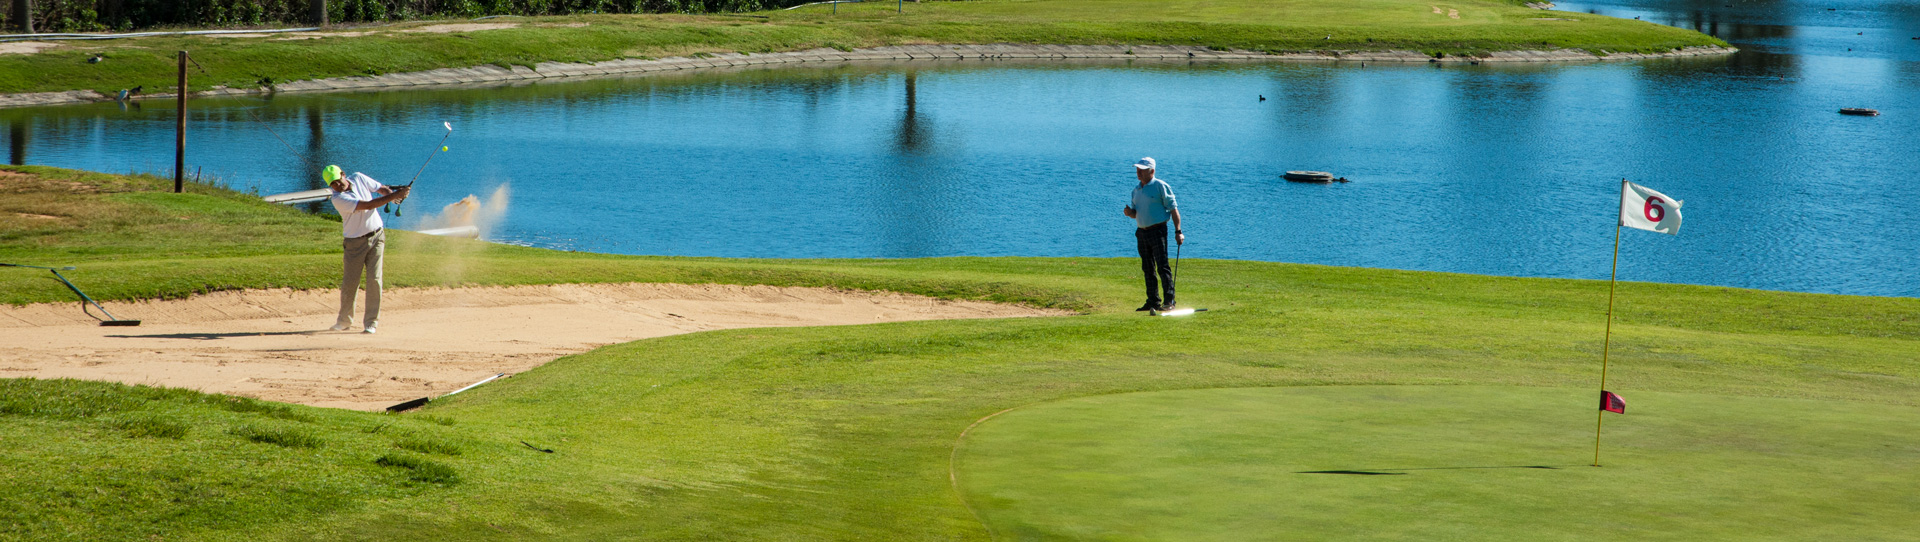 Salgados Golf Course - Photo 2